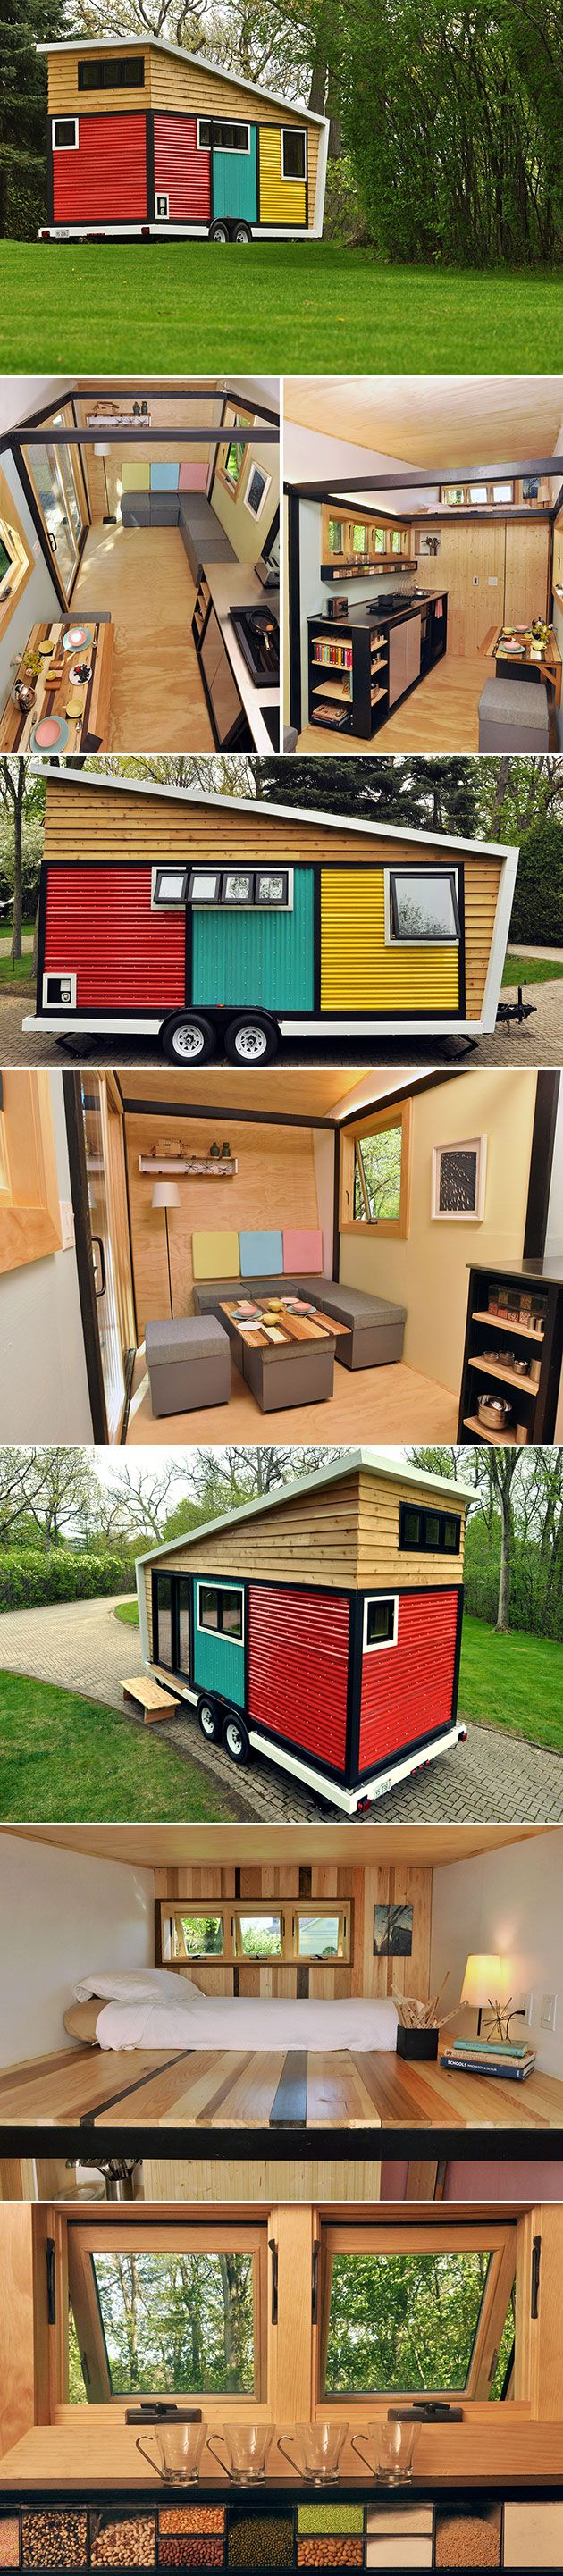 Toybox Tiny Home Looks Like A Playhouse But Open The Door And Youll See Its Modern House On Wheels